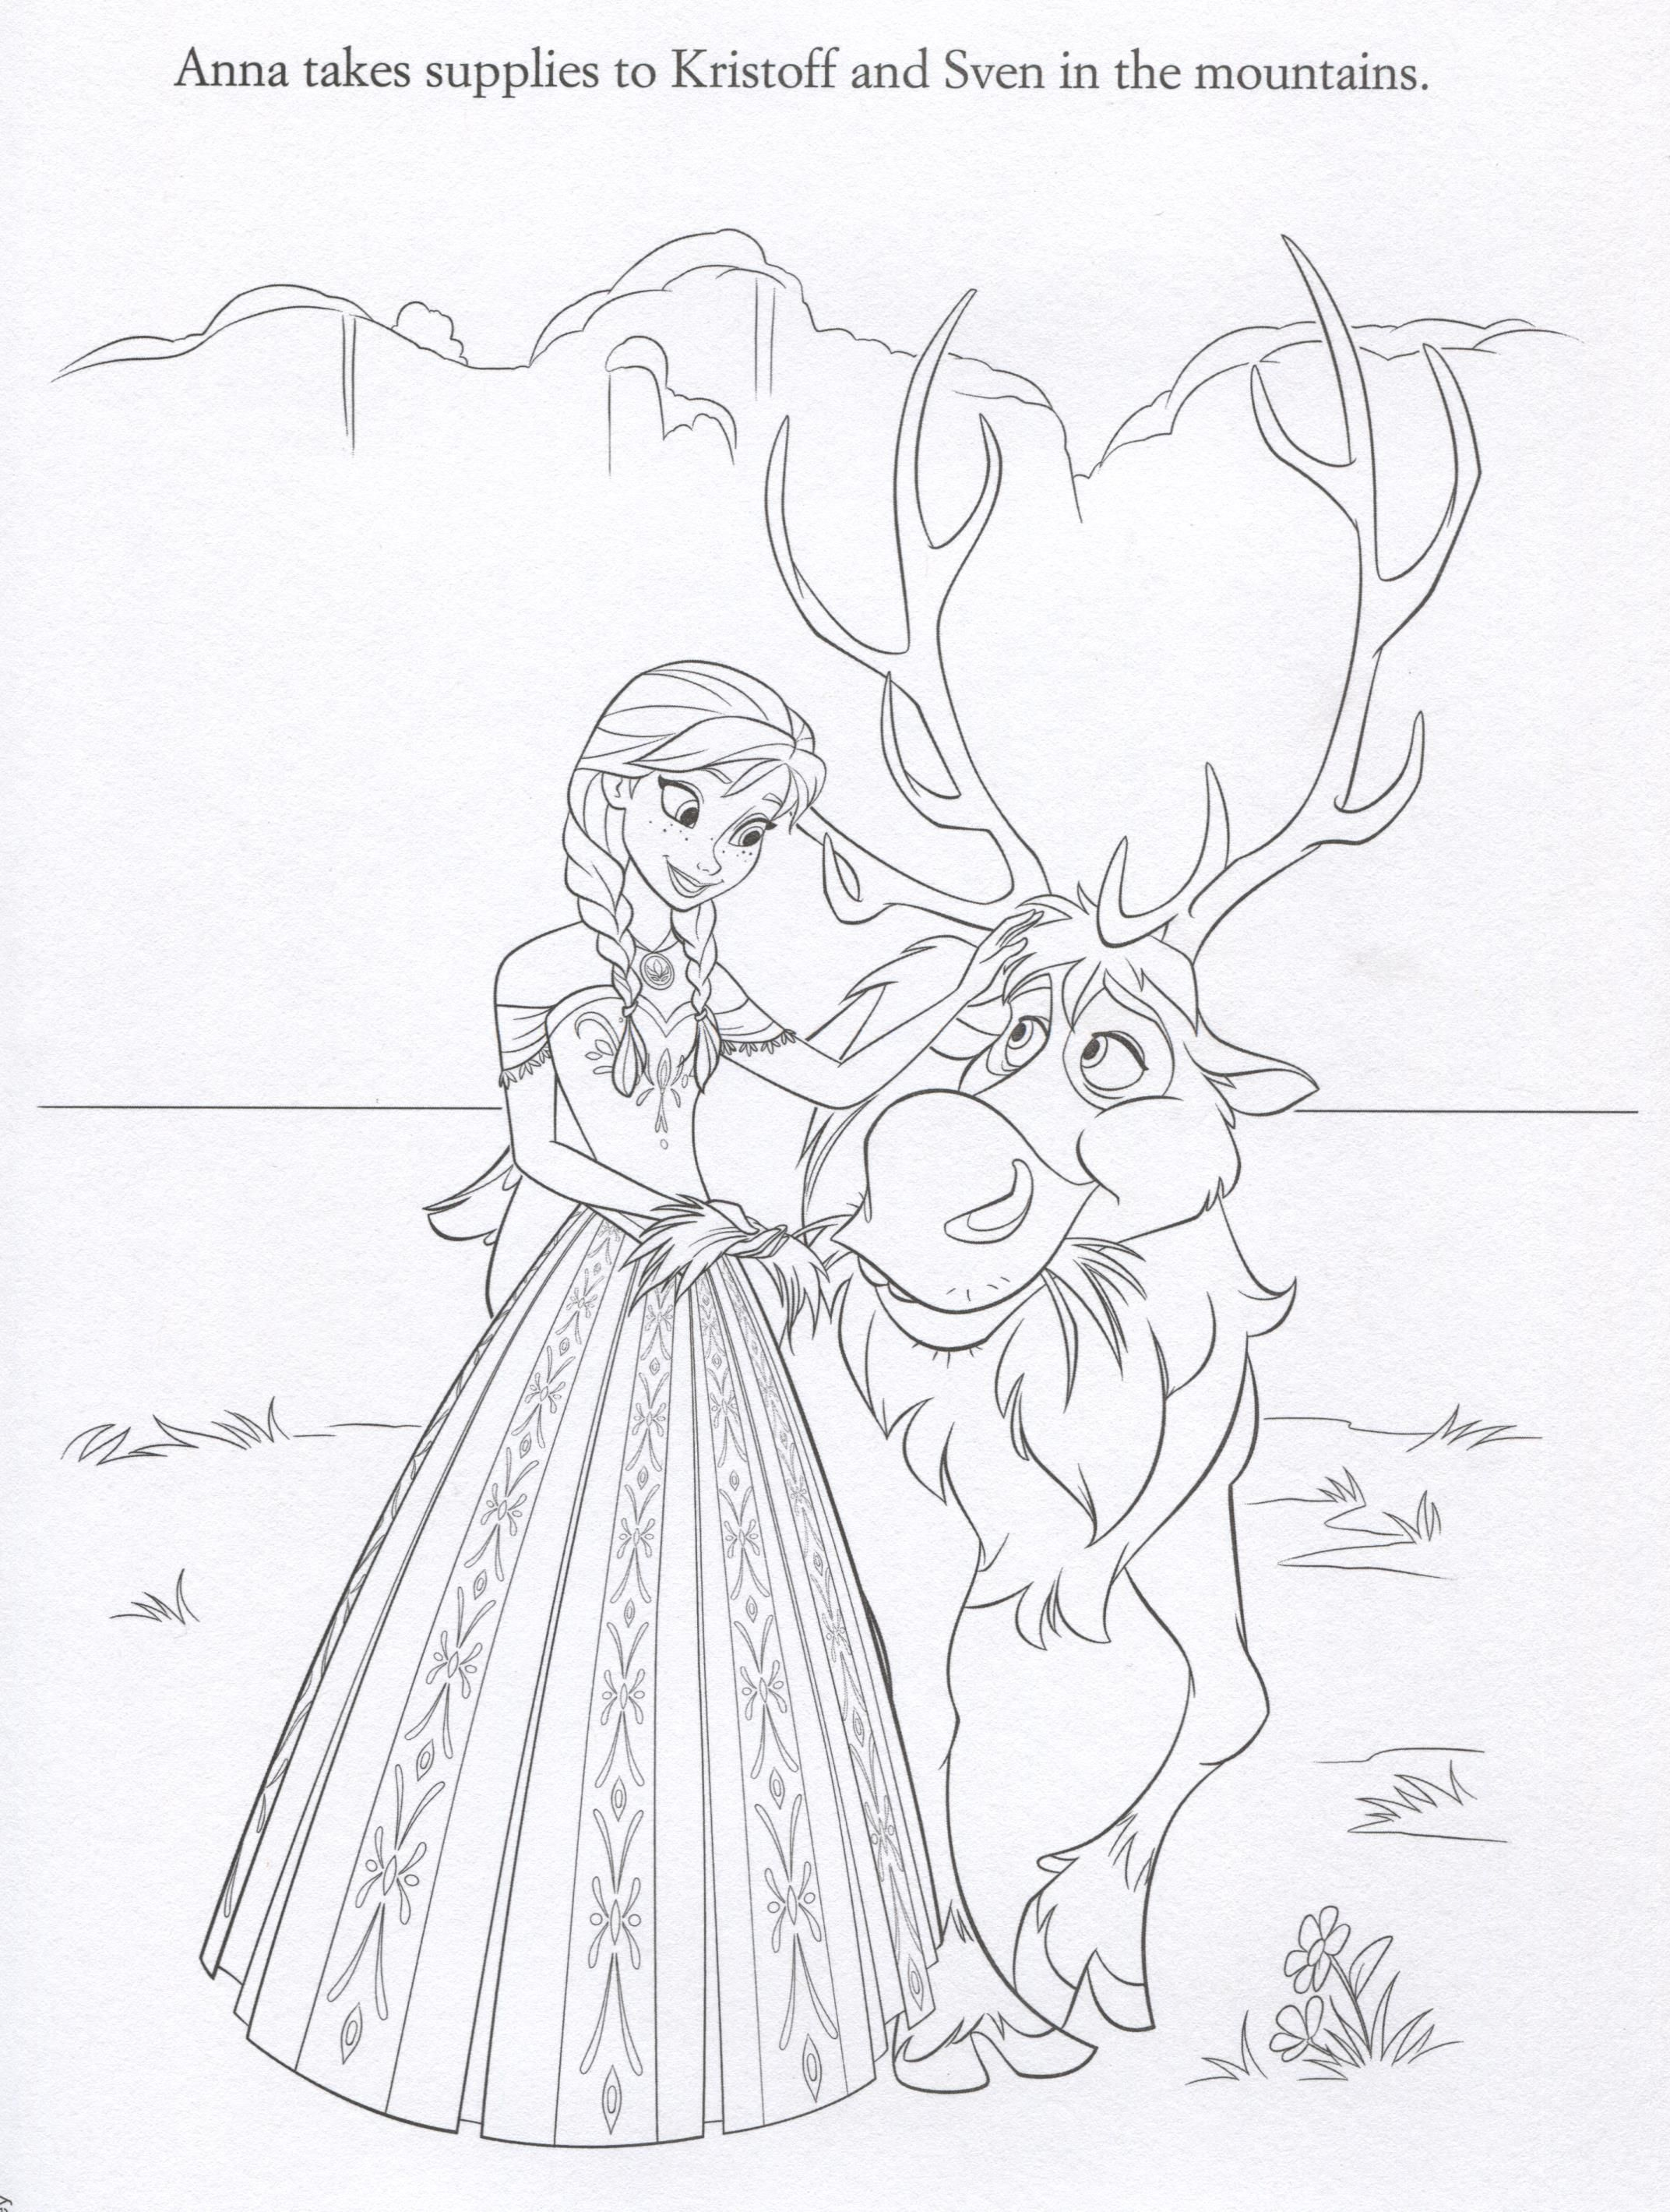 Official frozen illustrations (coloring pages) - Official Frozen Illustrations Coloring Pages